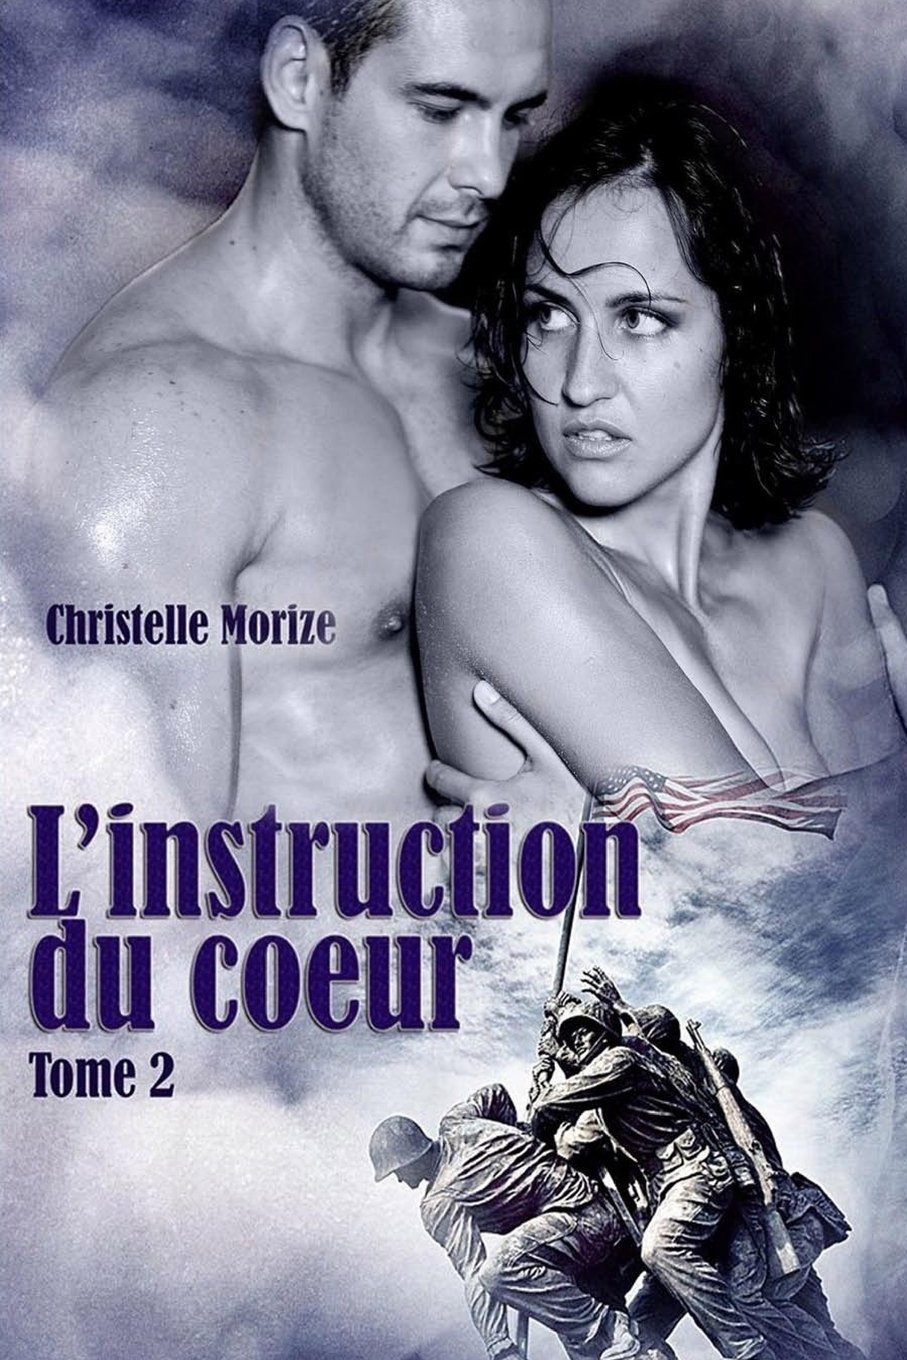 L'instruction du coeur - Tome 2 de Christelle Morize 71aqbe10